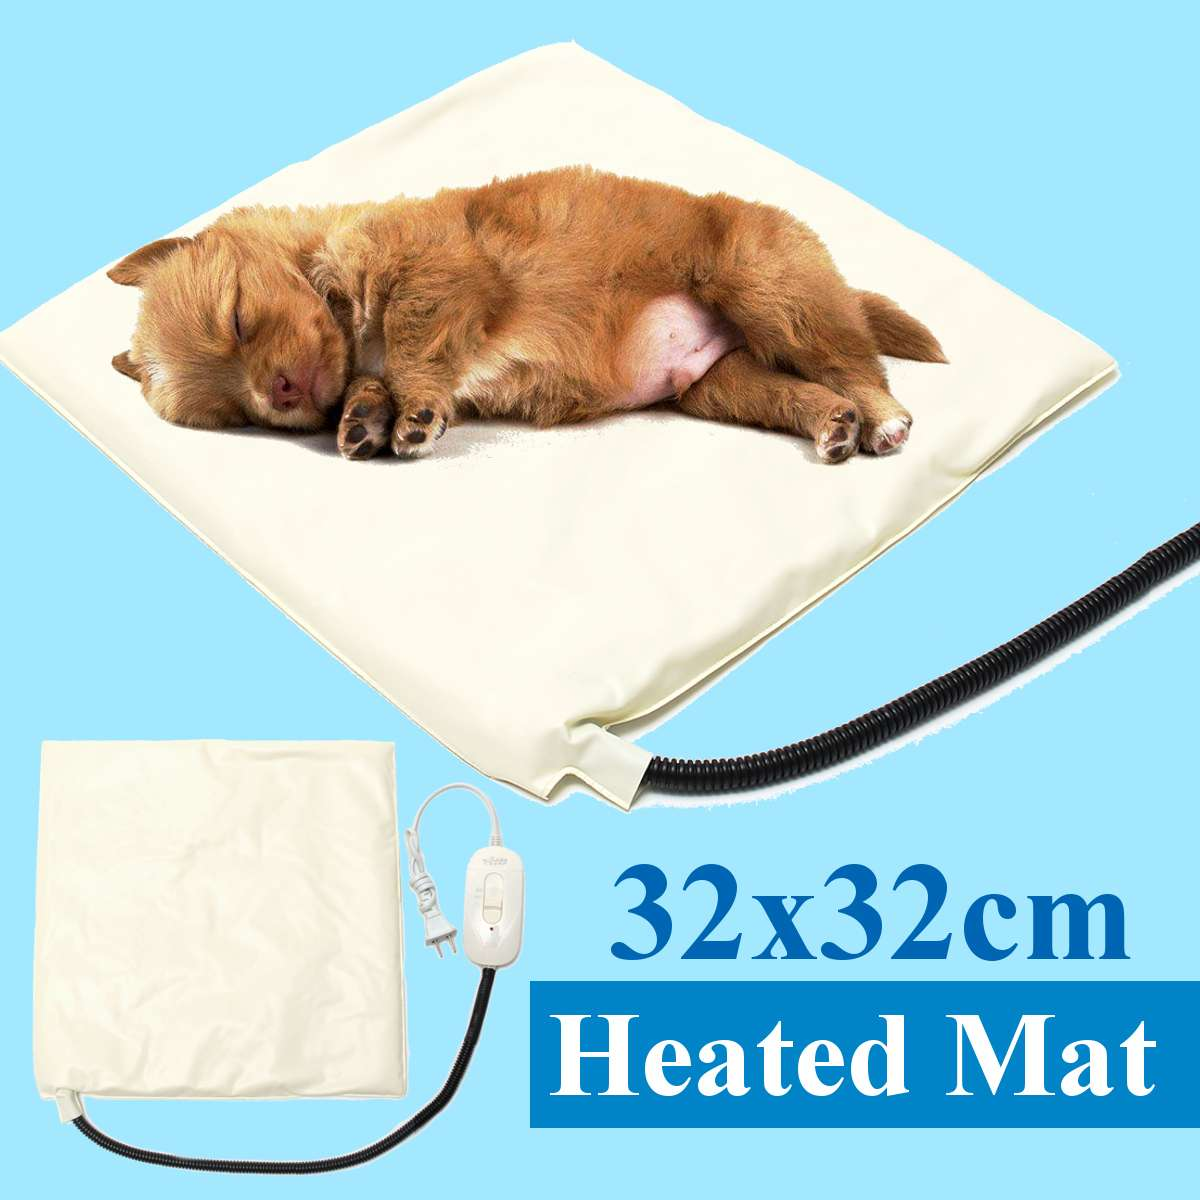 220V Pet Electric Heating Pad Blanket Warm For Dog Cat Adjustable Waterproof Heated Mat Anti Scratch Sleeping Bed Winter